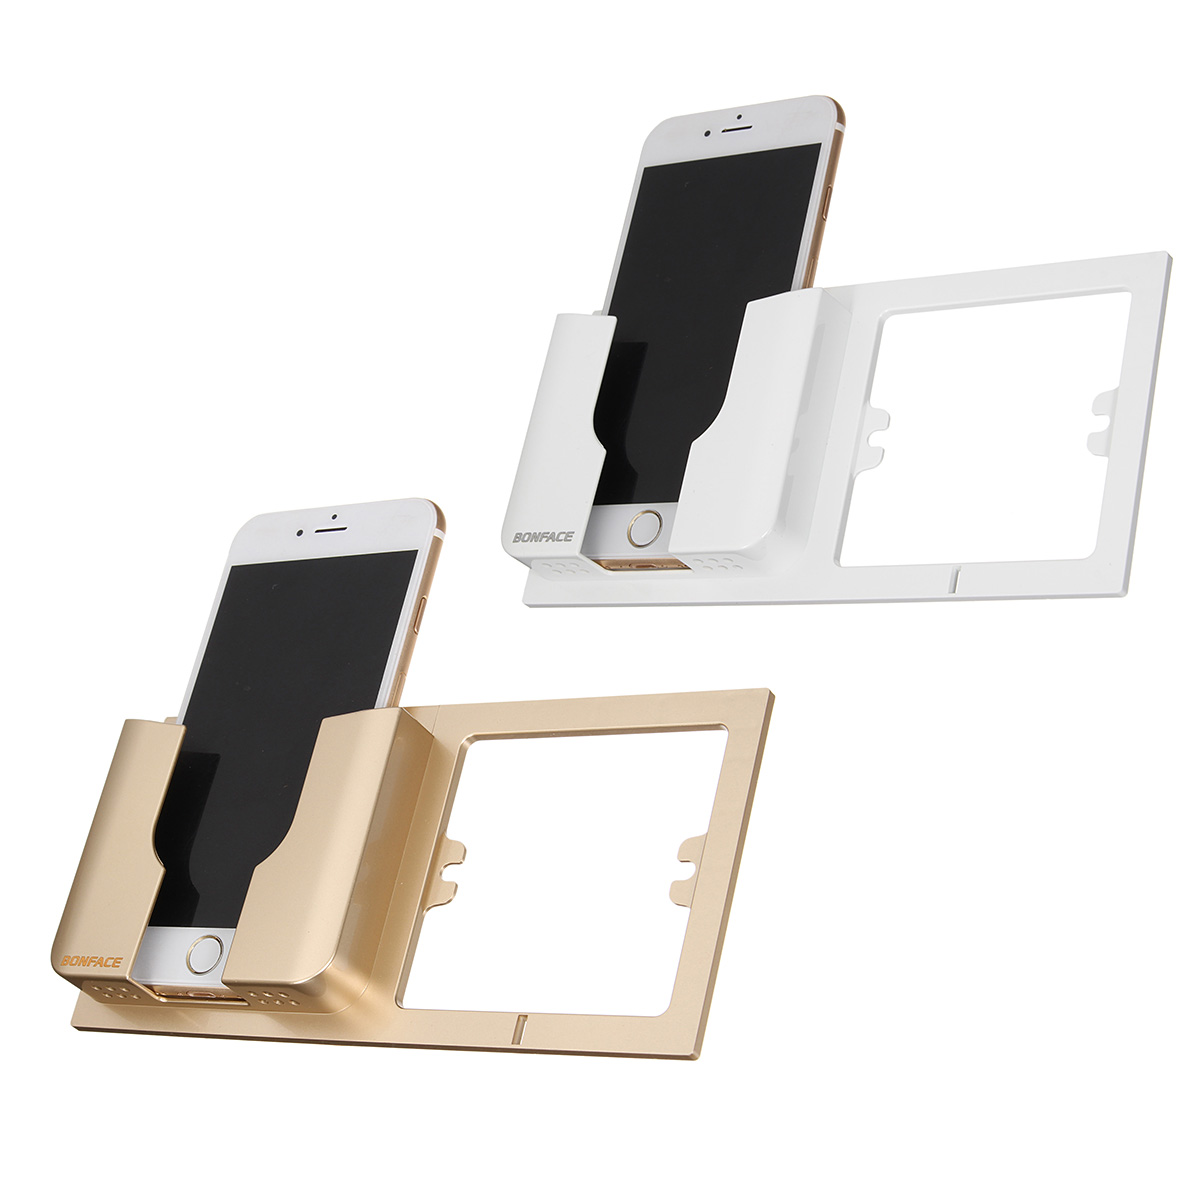 Multifunctional Wall Socket Mobile Phone Stand Wall Charging Holder Bracket for Phone under 6 inches